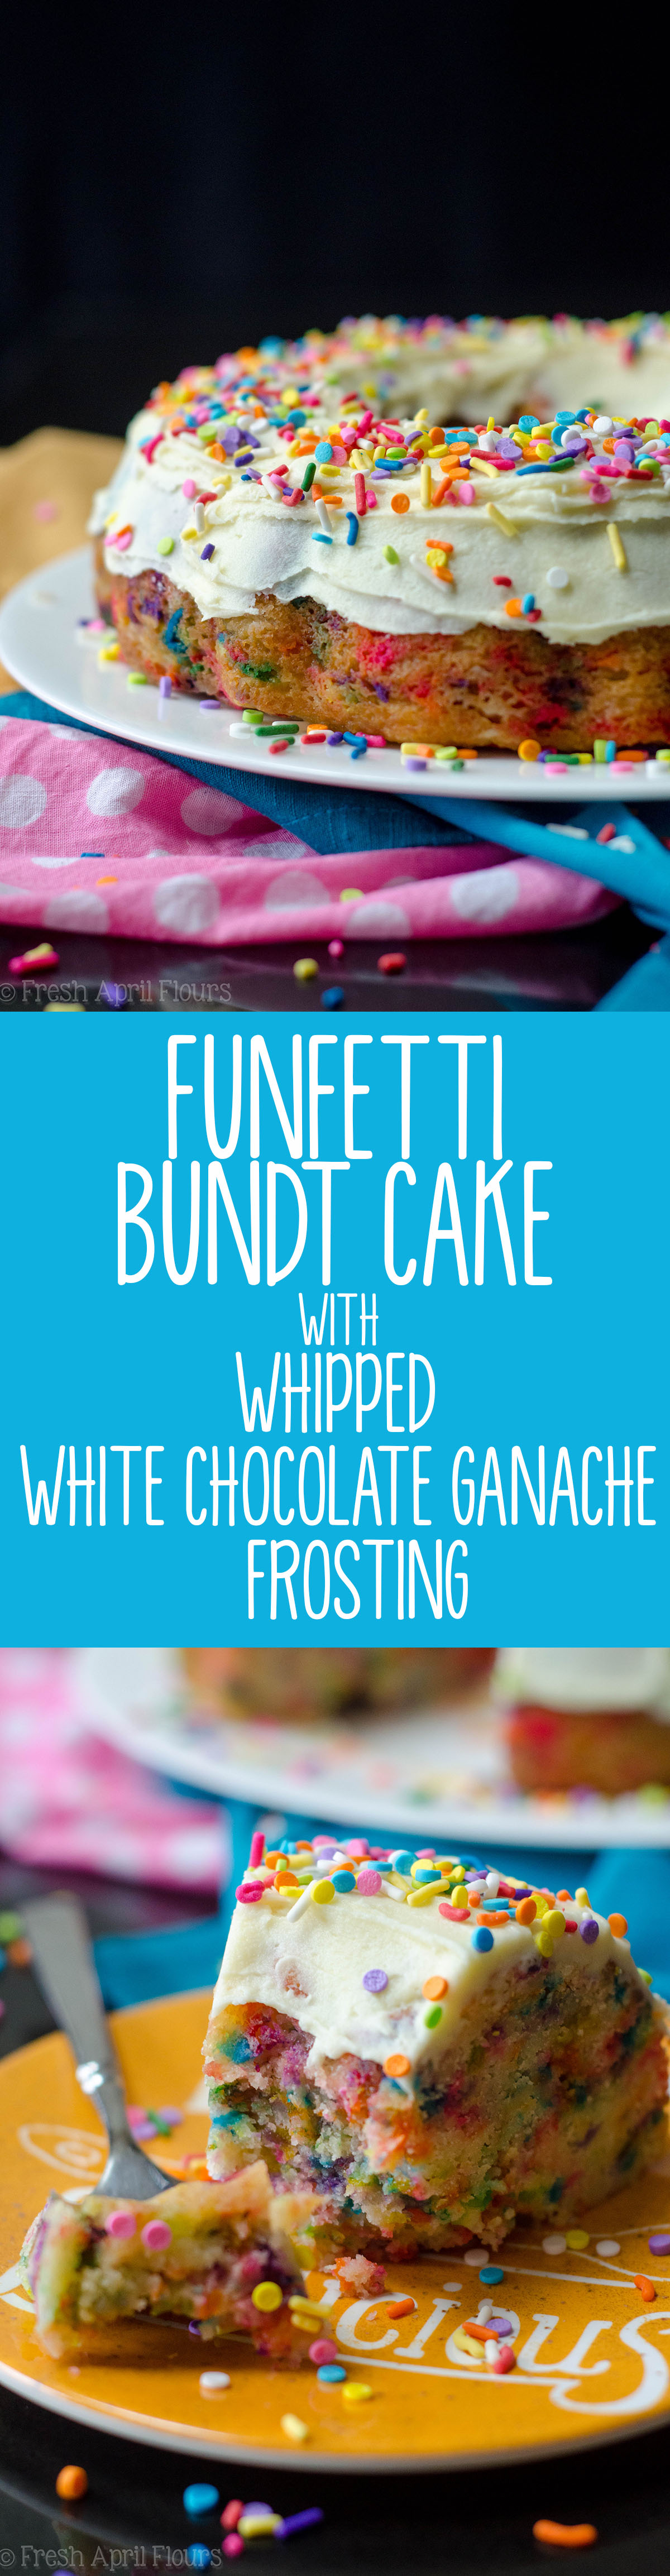 Funfetti Bundt Cake with Whipped White Chocolate Ganache Frosting: Classic white cake loaded with sprinkles and covered in a buttery white chocolate ganache.